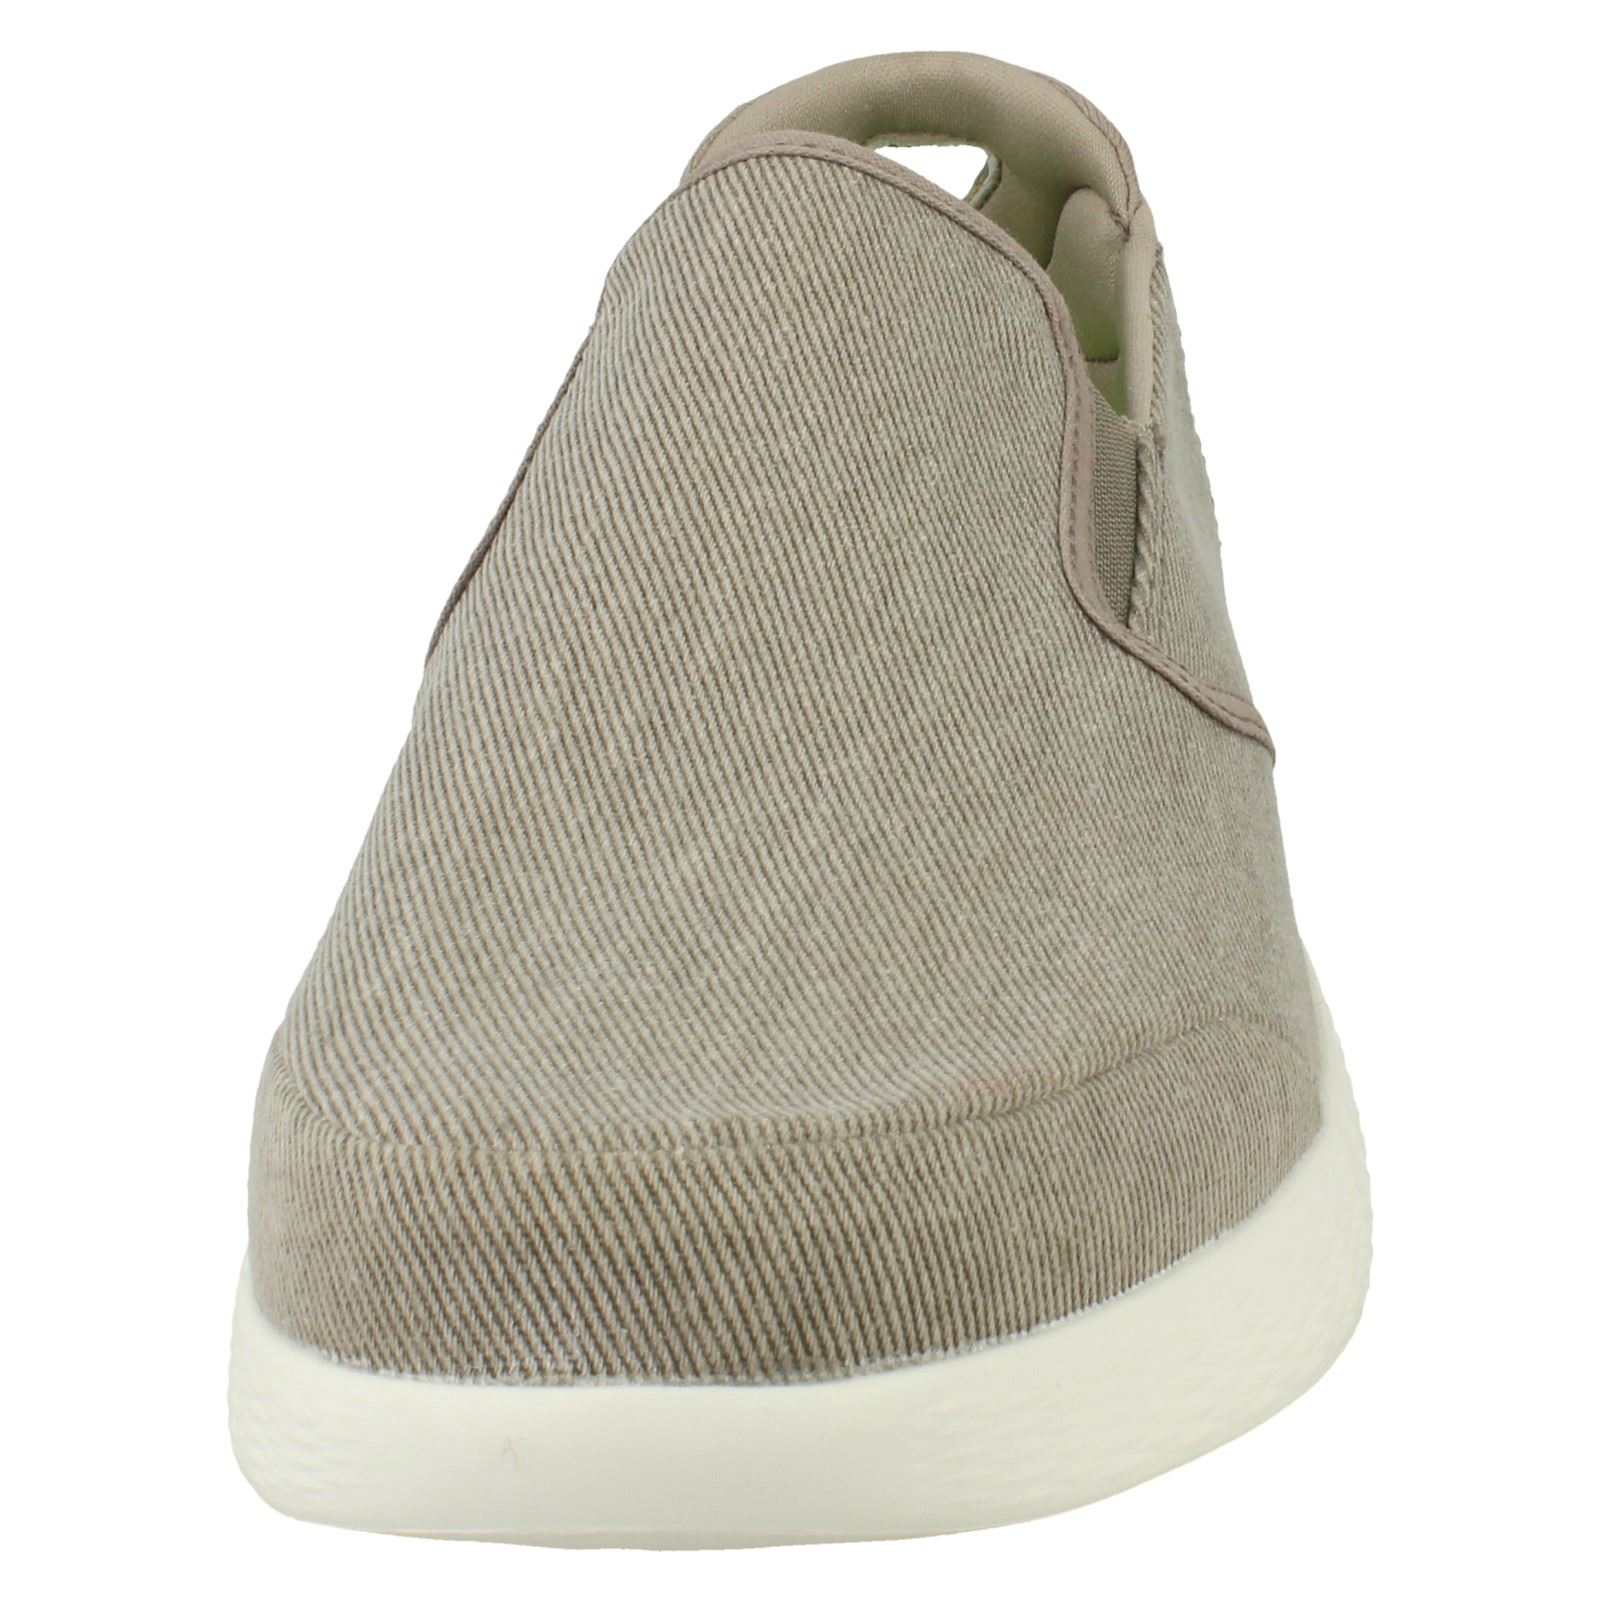 Men-Skechers-On-The-Go-Glide-Victorious-53781-Trainers thumbnail 10